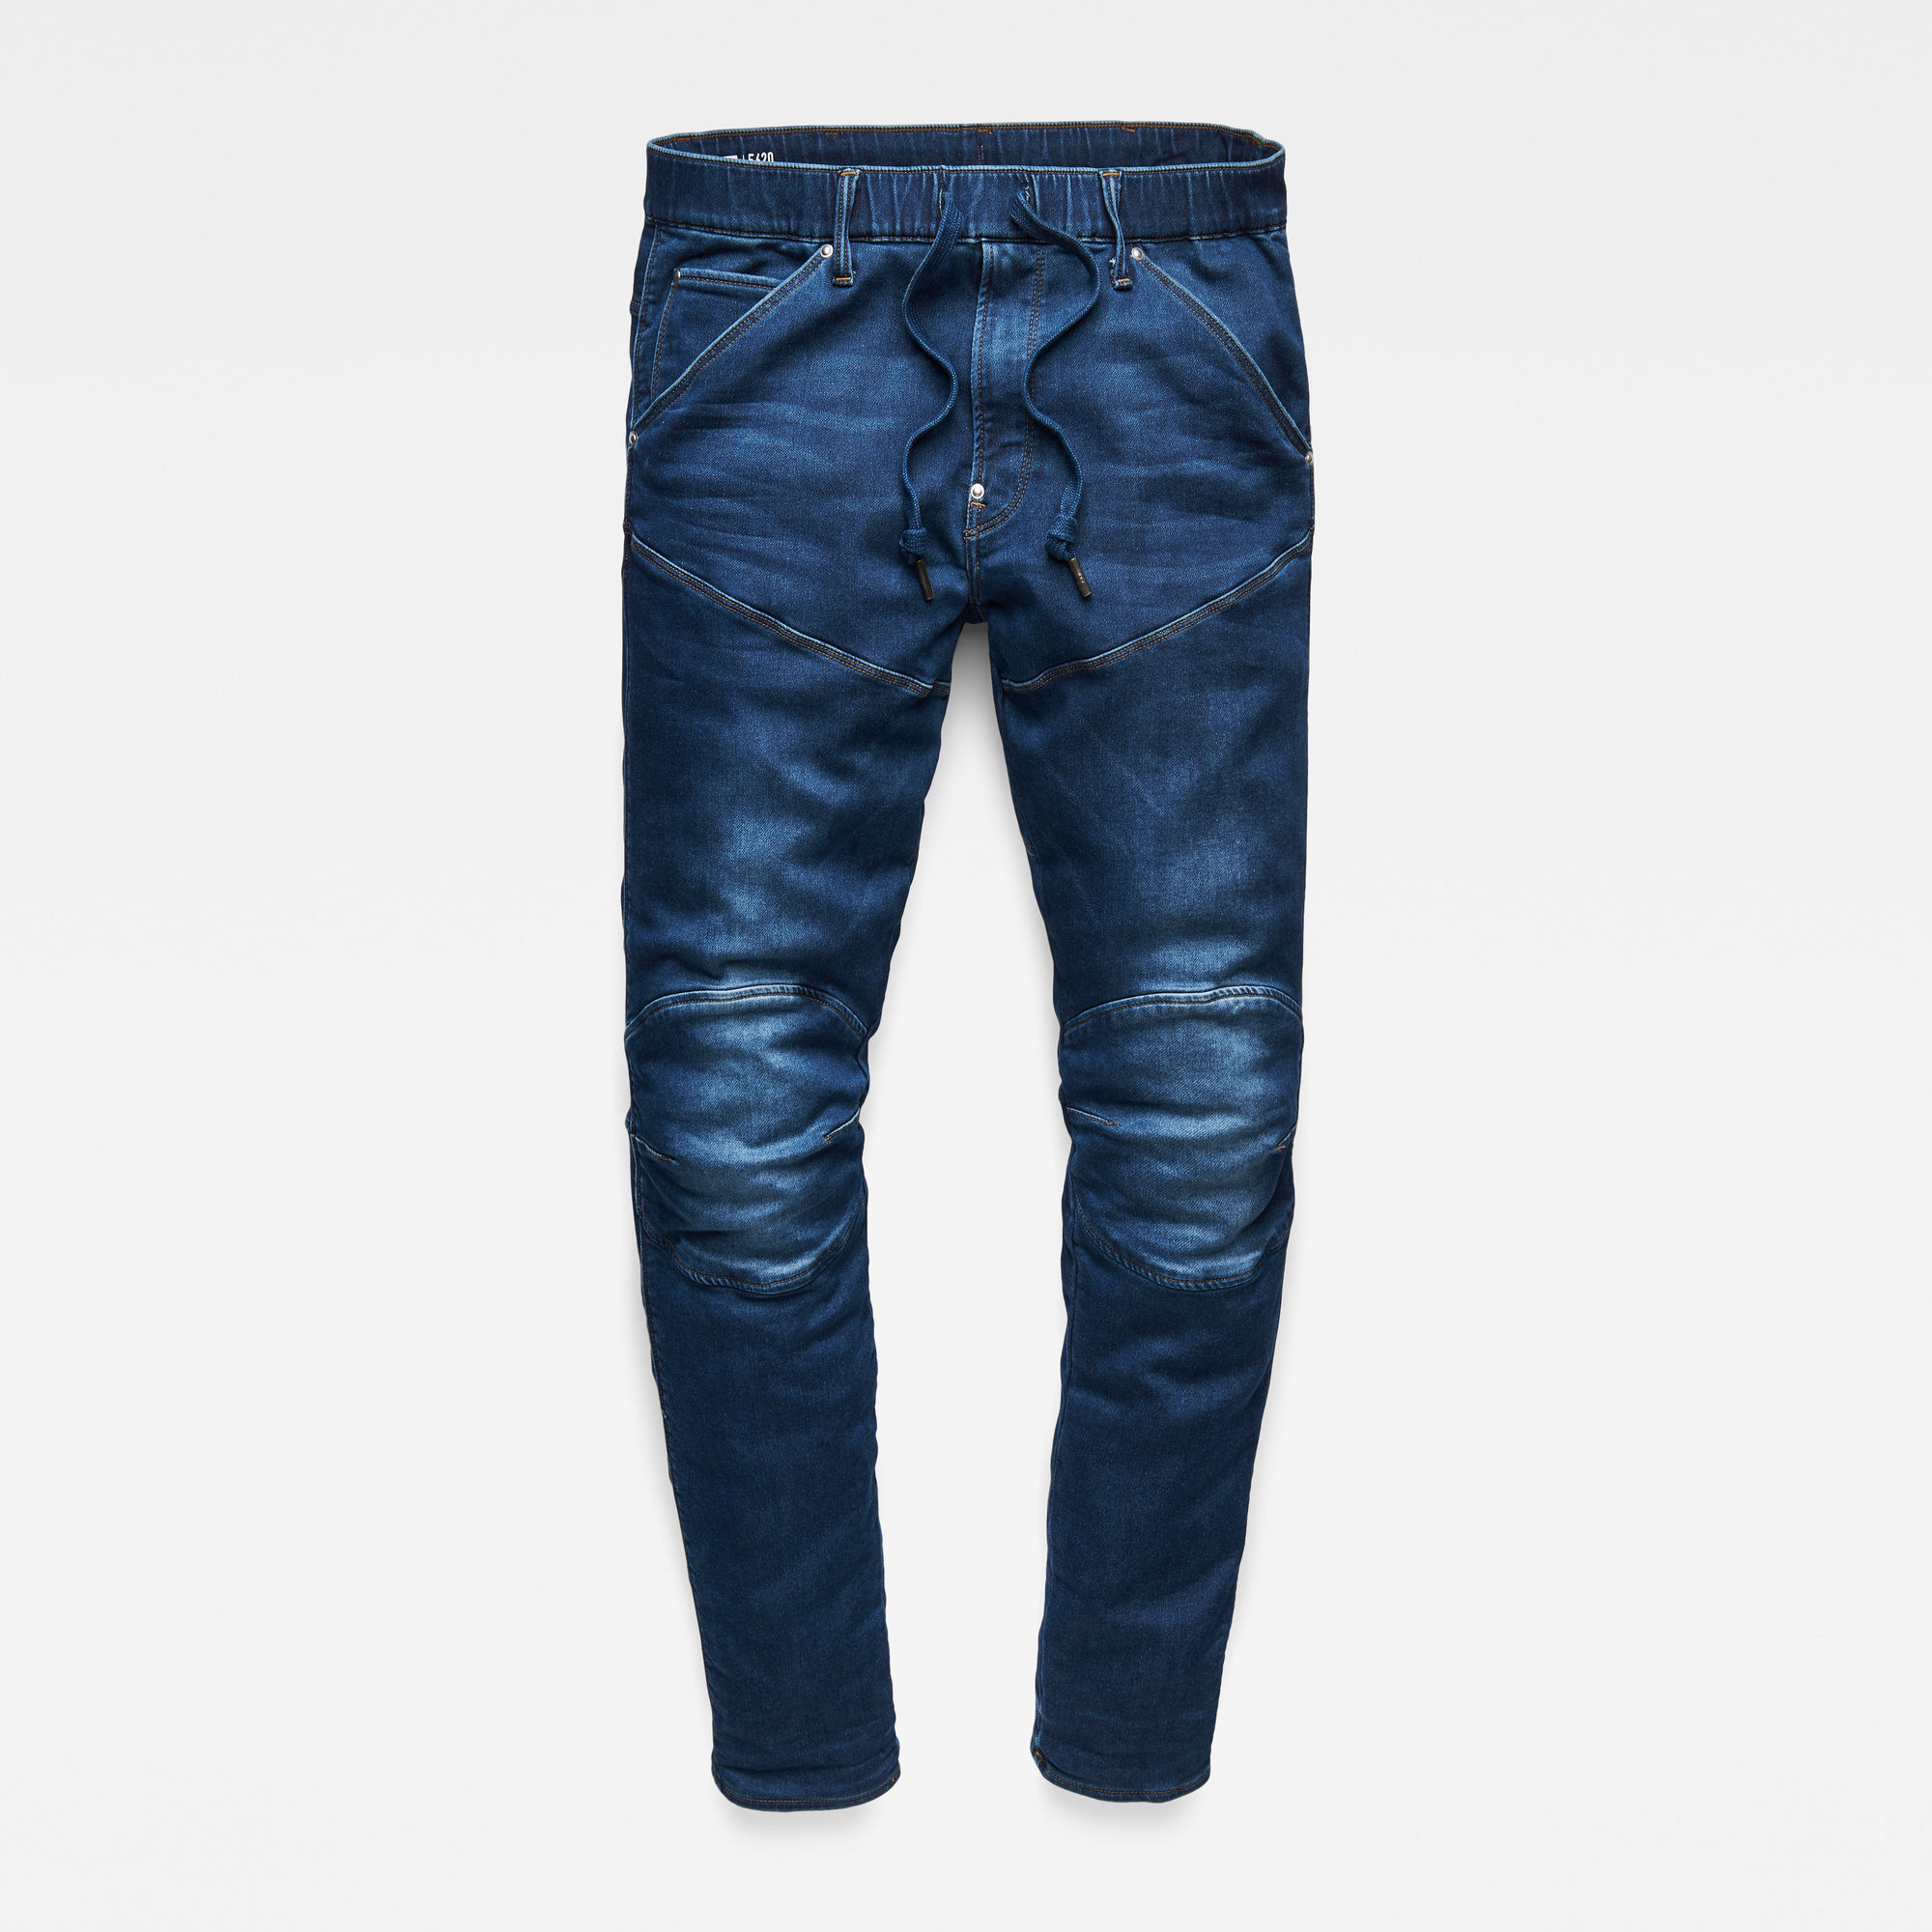 Image of G Star Raw 5620-R 3D Sport Tapered Pants